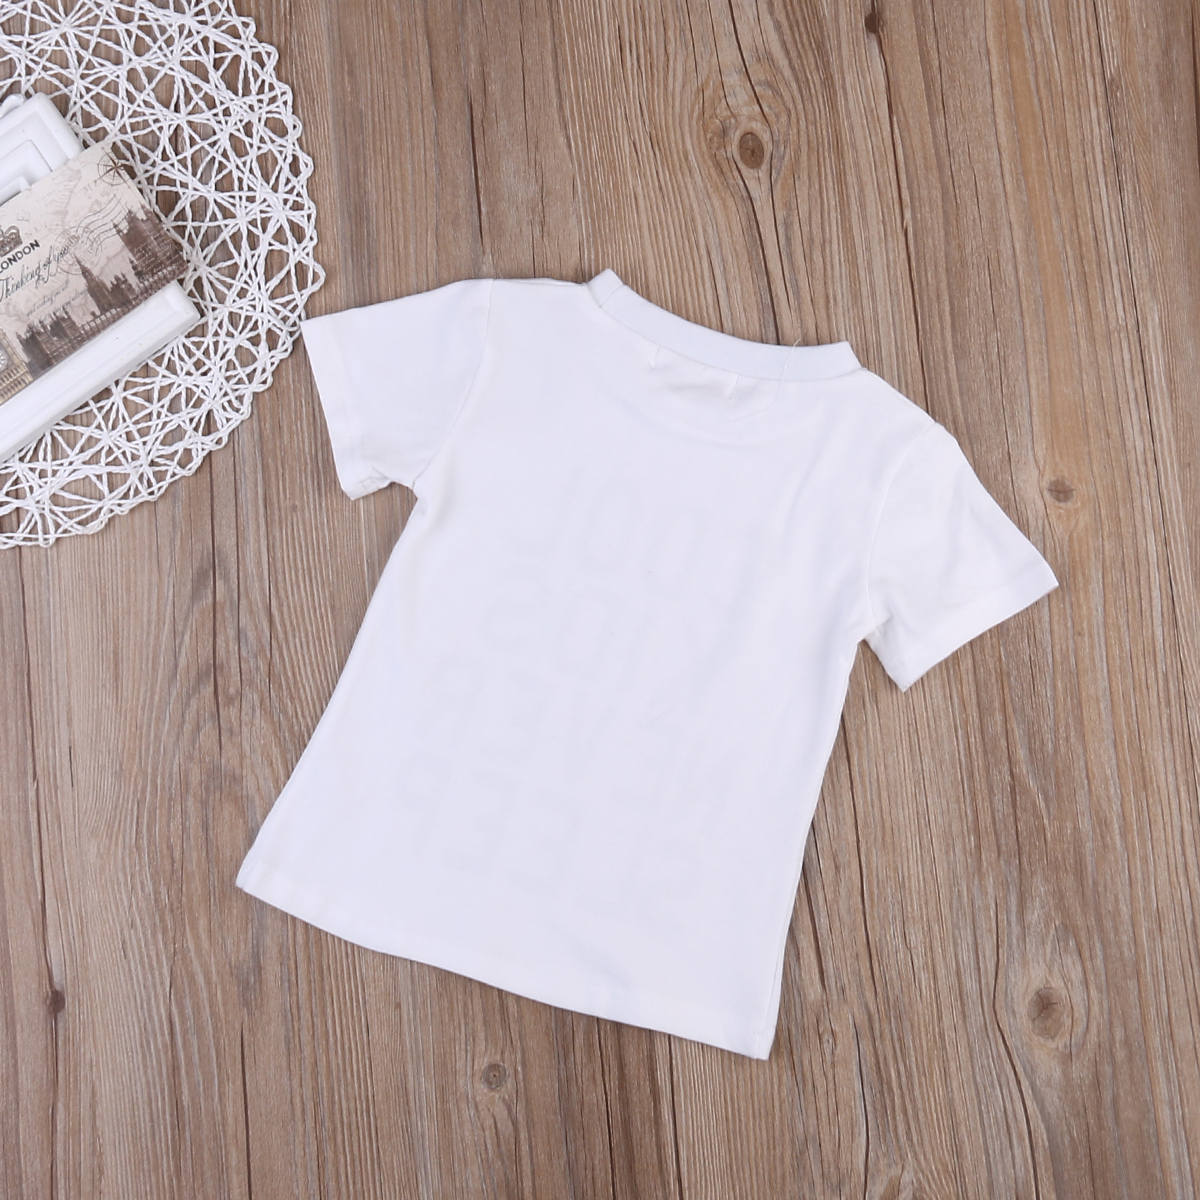 2017-Summer-Toddler-Kids-T-shirt-Cool-Kids-Letter-Printed-Baby-Boy-Girl-T-Shirt-Tops-Short-Sleeve-Cotton-Casual-Clothes-1-6Y-3